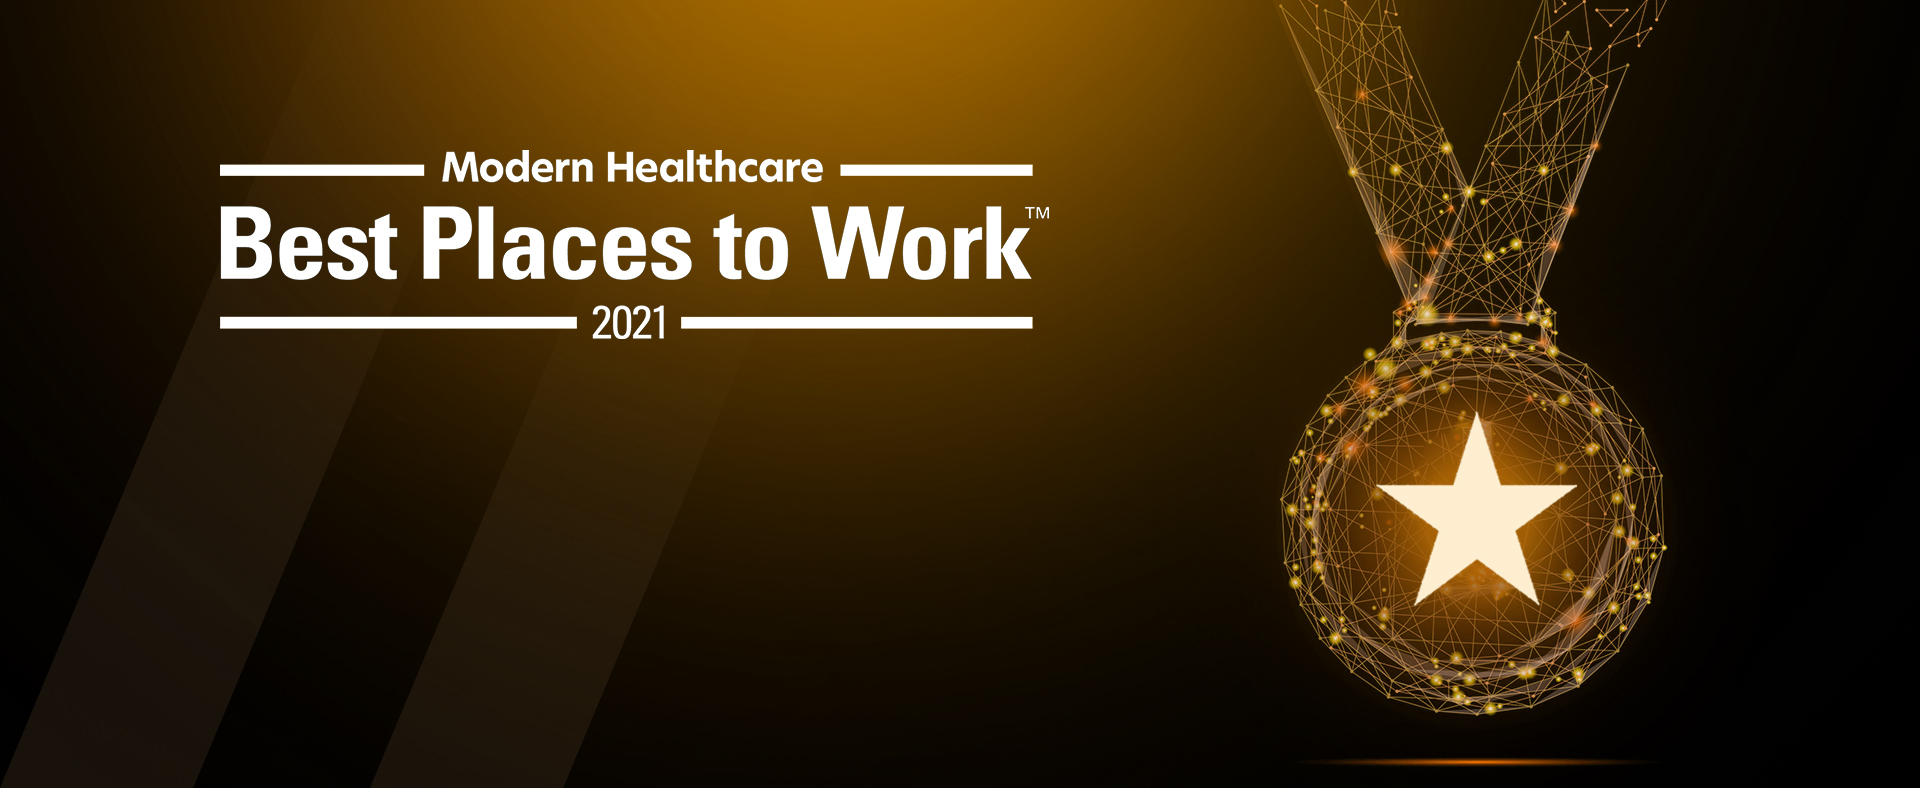 Vee Technologies Makes the List of Best Places to Work in Healthcare